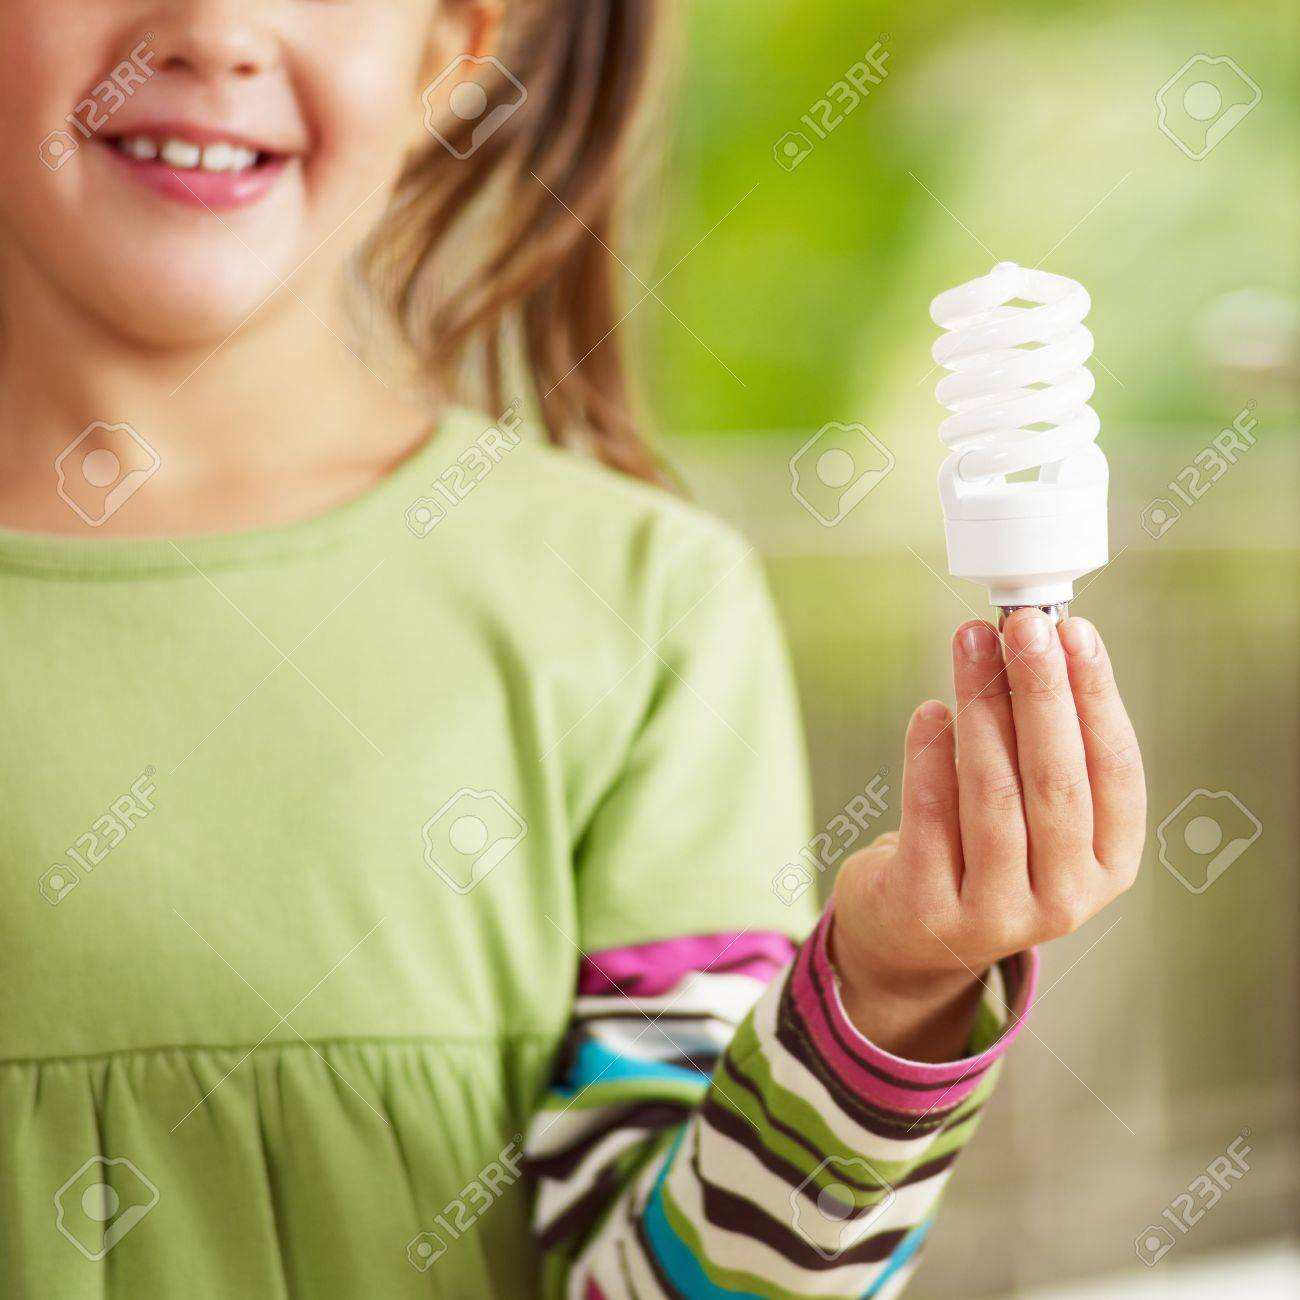 Girl holding light bulb and smiling. Selective focus Stock Photo - 5746741